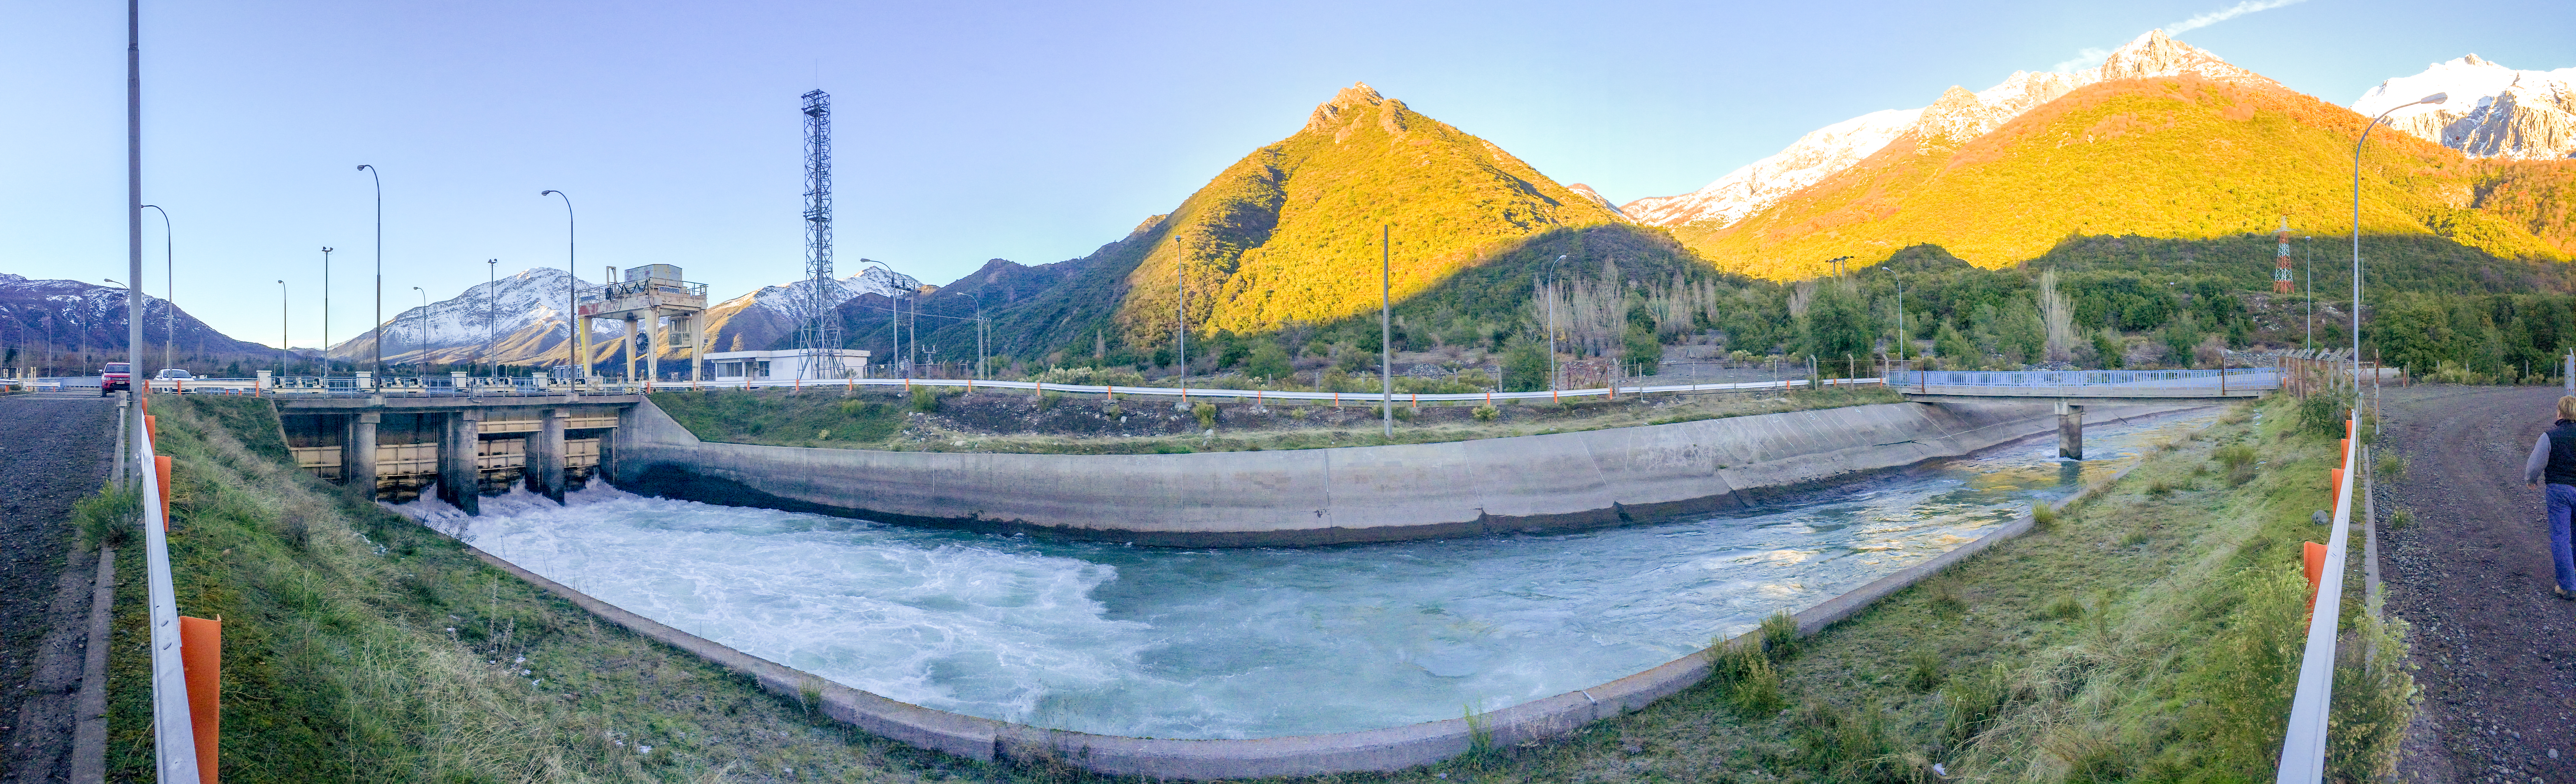 Water canal shown as an example of existing water flow where Natel Energy hydropower system can be installed.  Natel Energy photo.  Used by persmission.